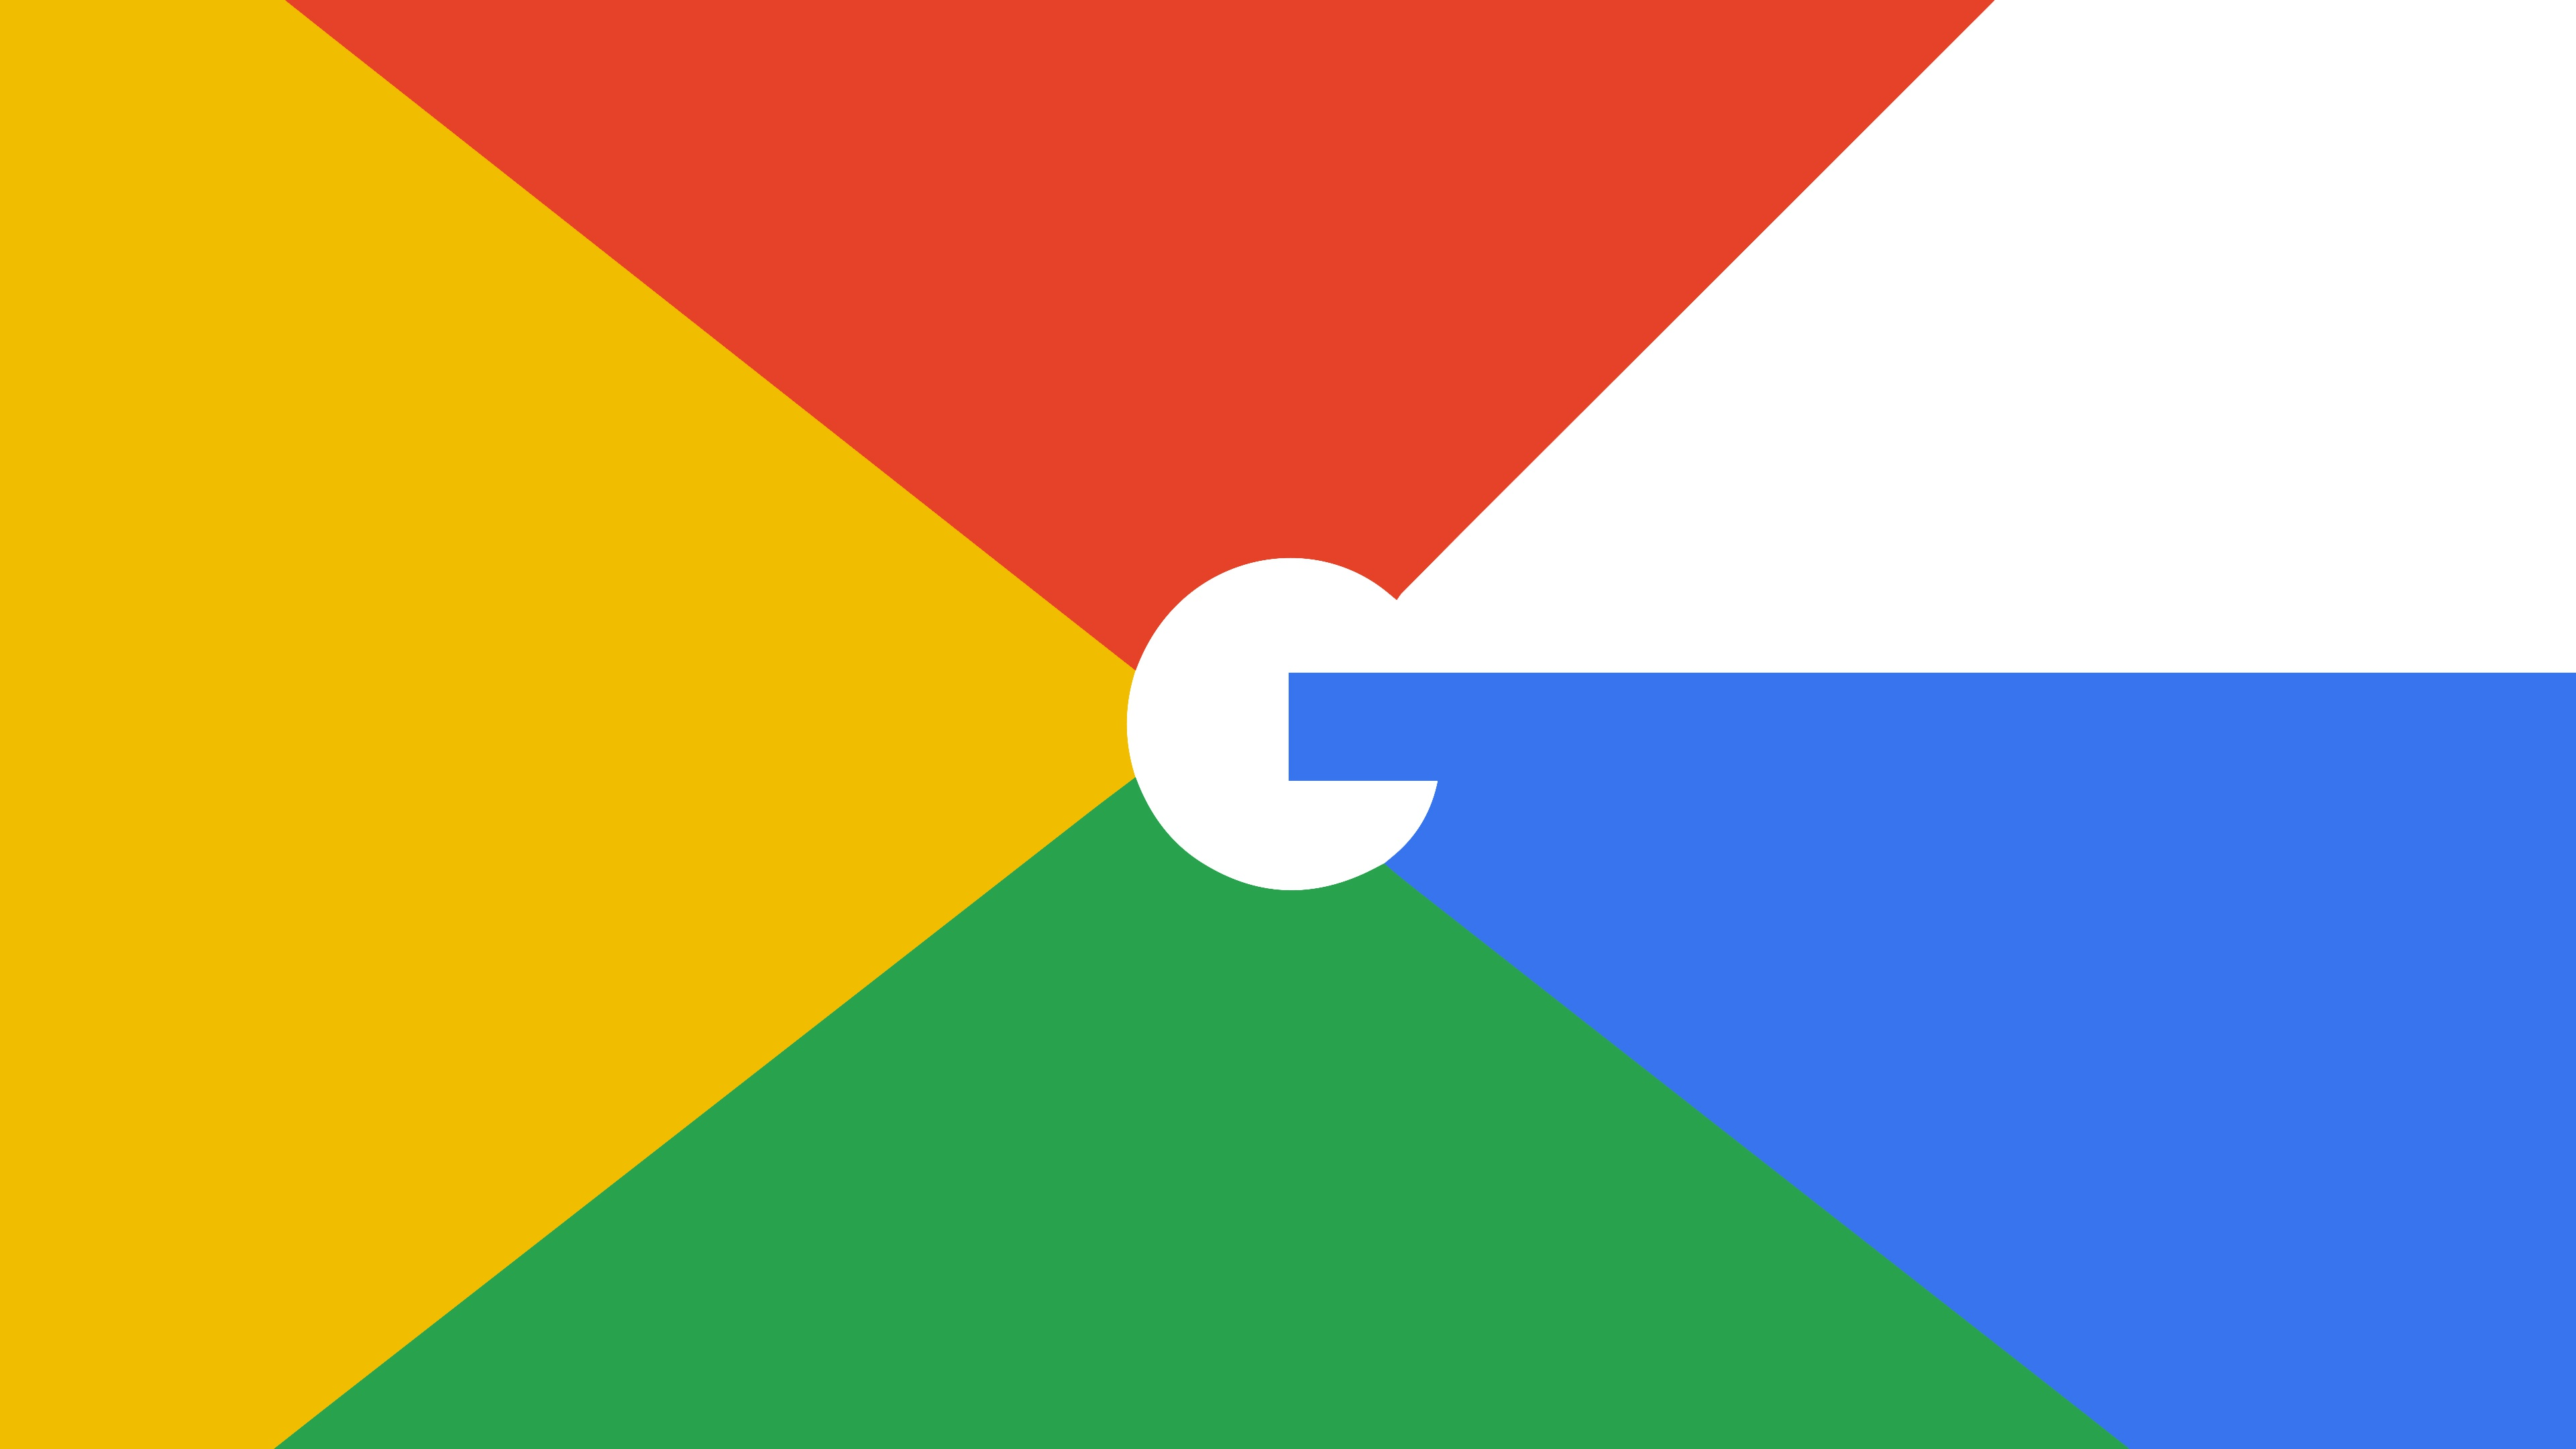 google logo minimalism 4k hd others 4k wallpapers images